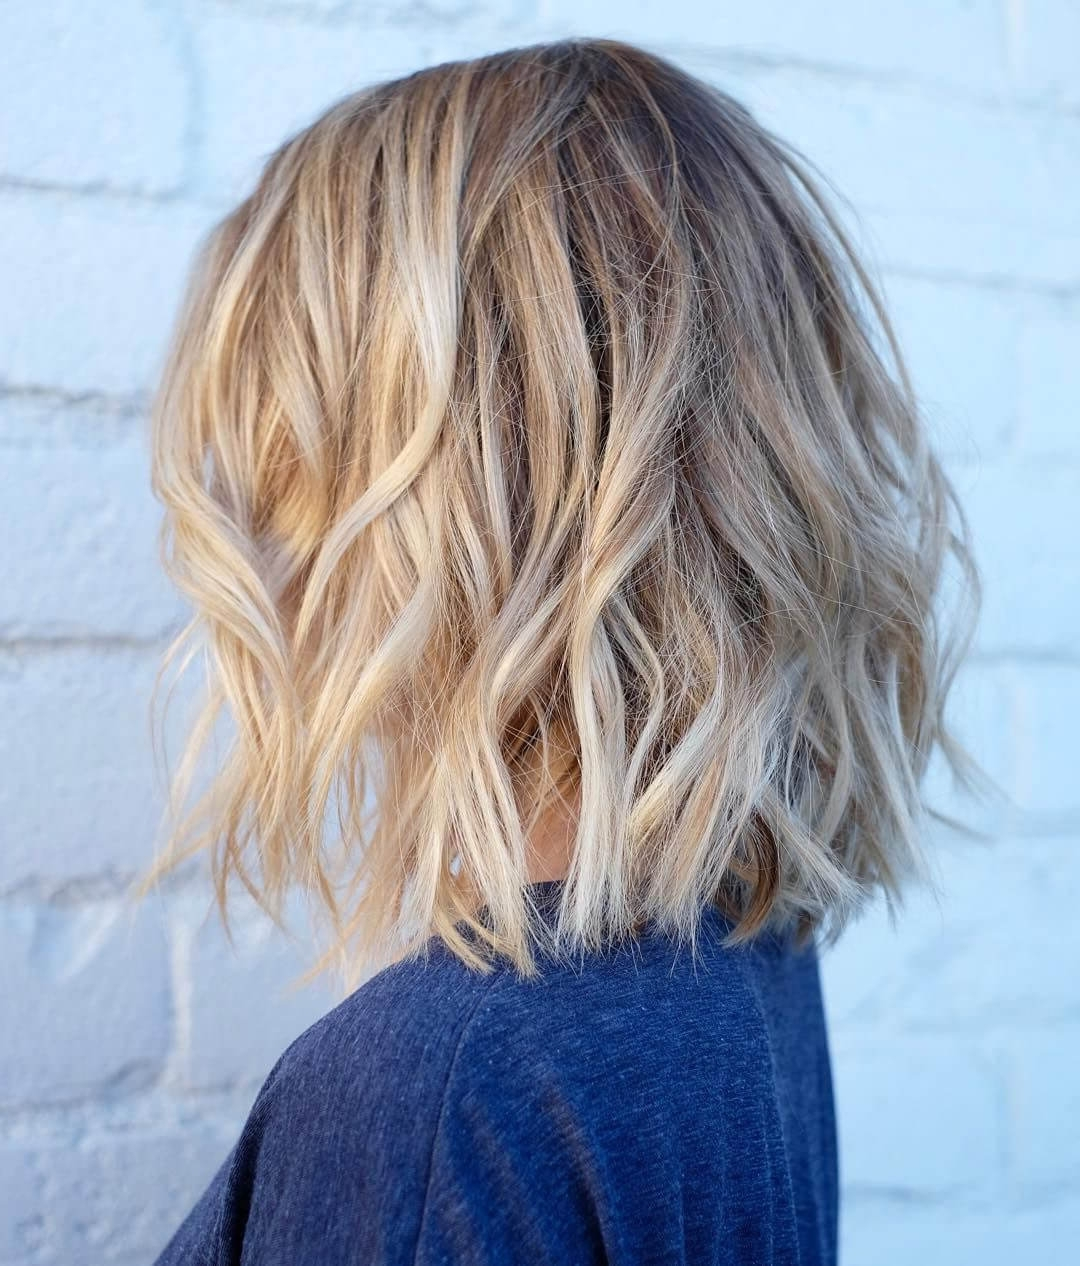 50 Fresh Short Blonde Hair Ideas To Update Your Style In 2018 Inside Most Recent Casual Bright Waves Blonde Hairstyles With Bangs (View 5 of 20)